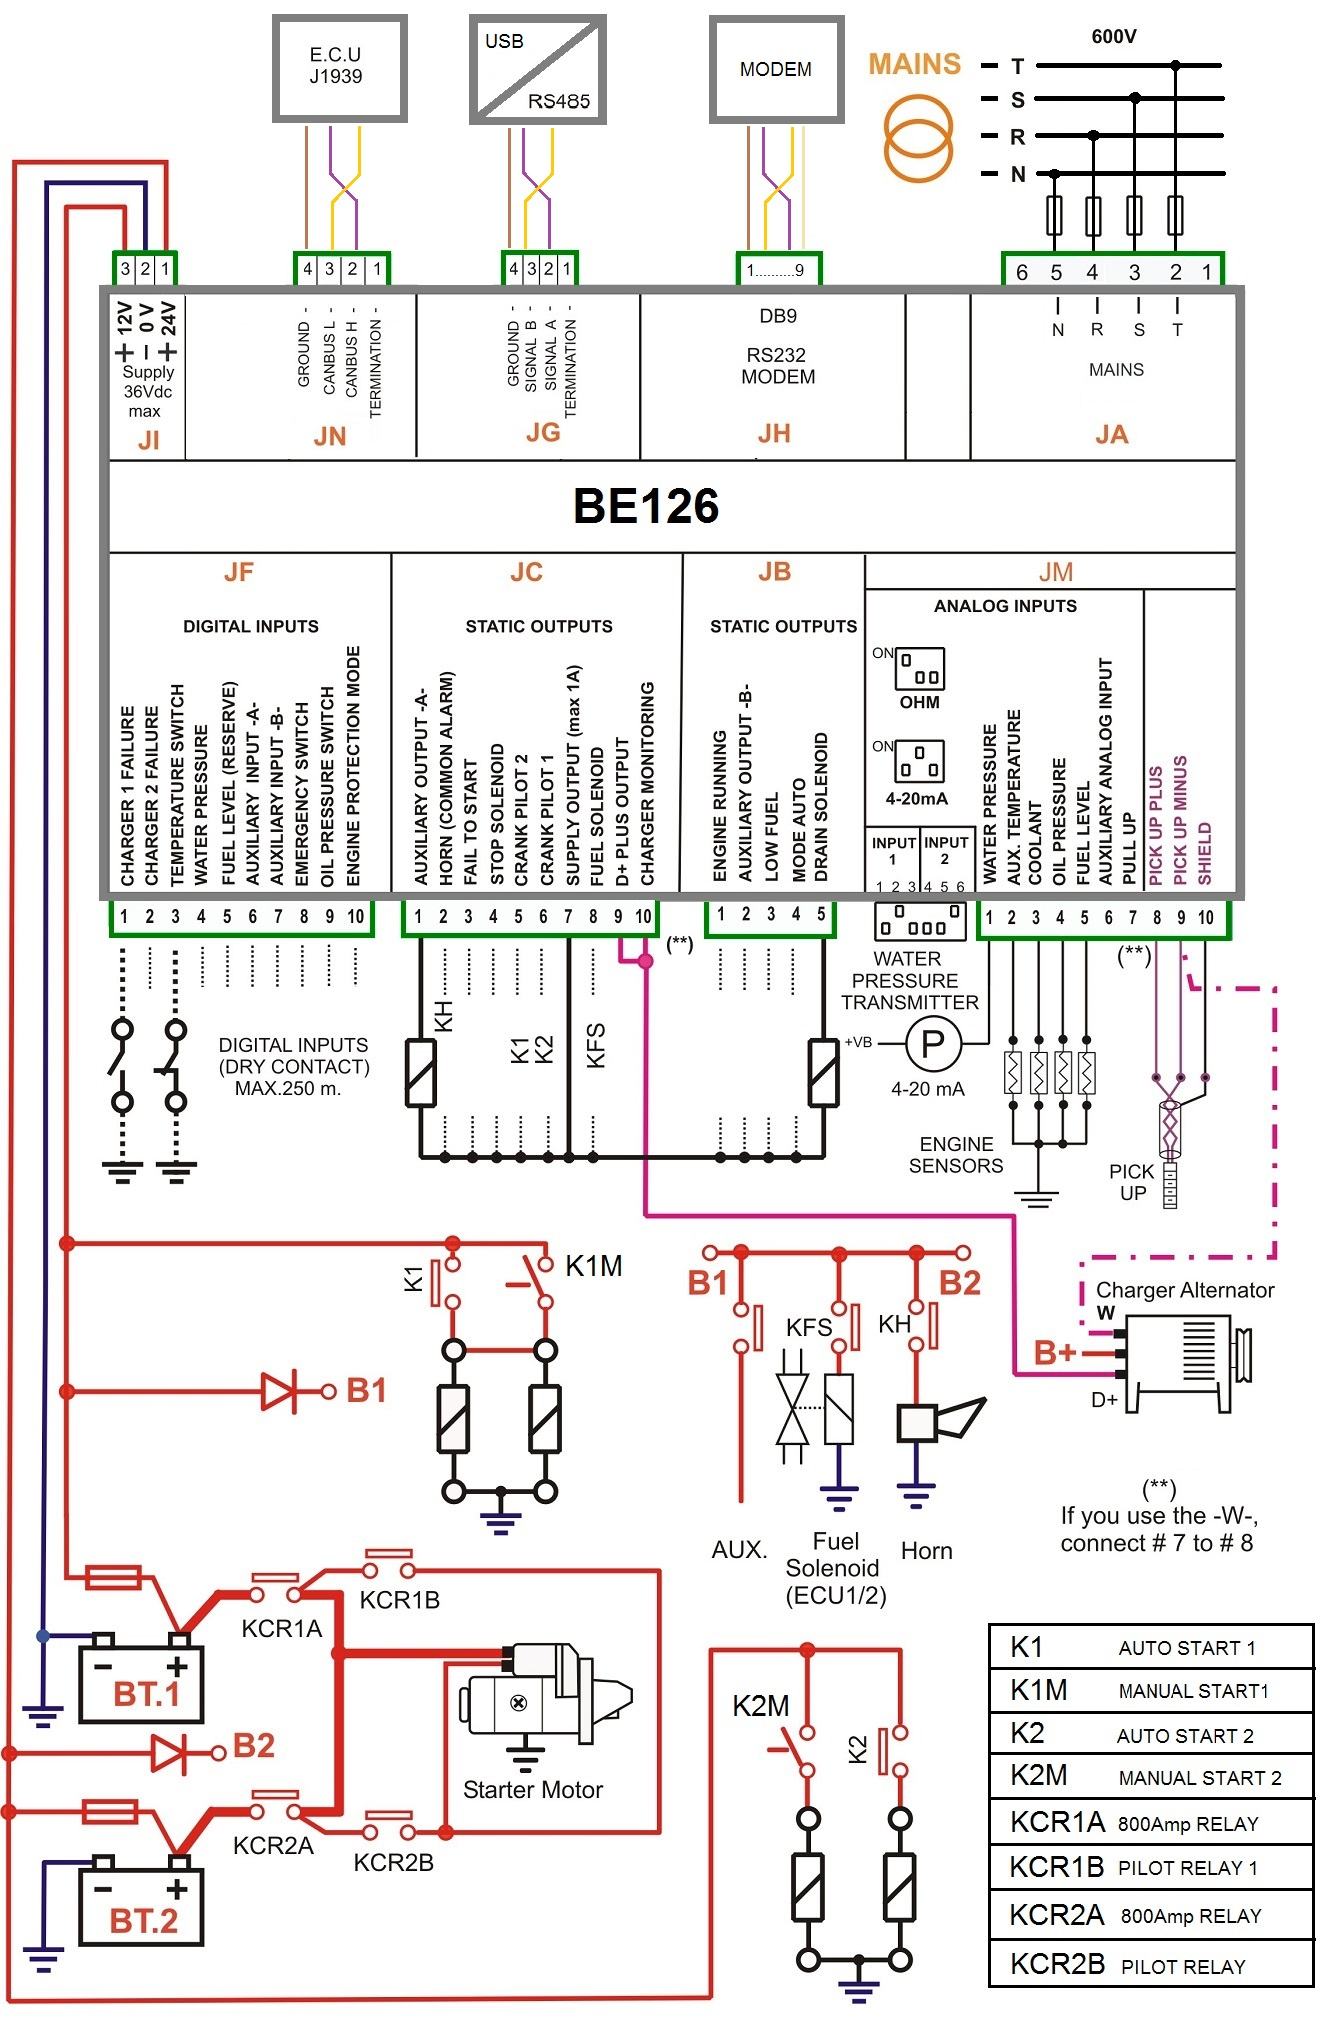 NFPA20 fire pump controller wiring diagram fire pump controller wiring diagram genset controller pump panel wiring diagram at eliteediting.co